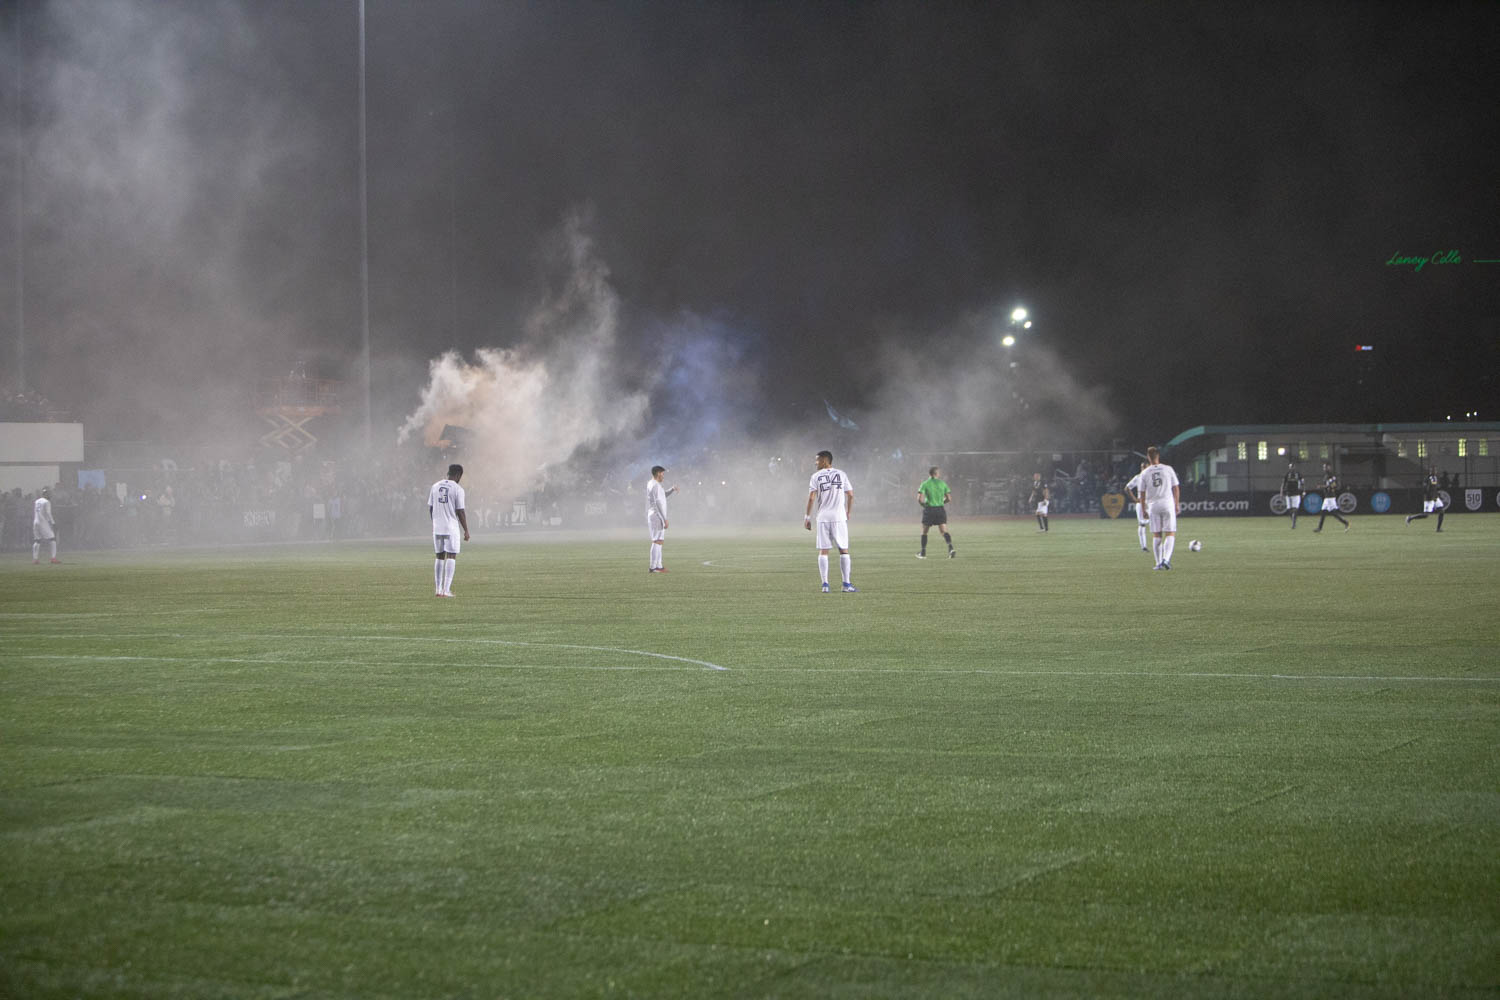 Smoke hovers over the soccer field